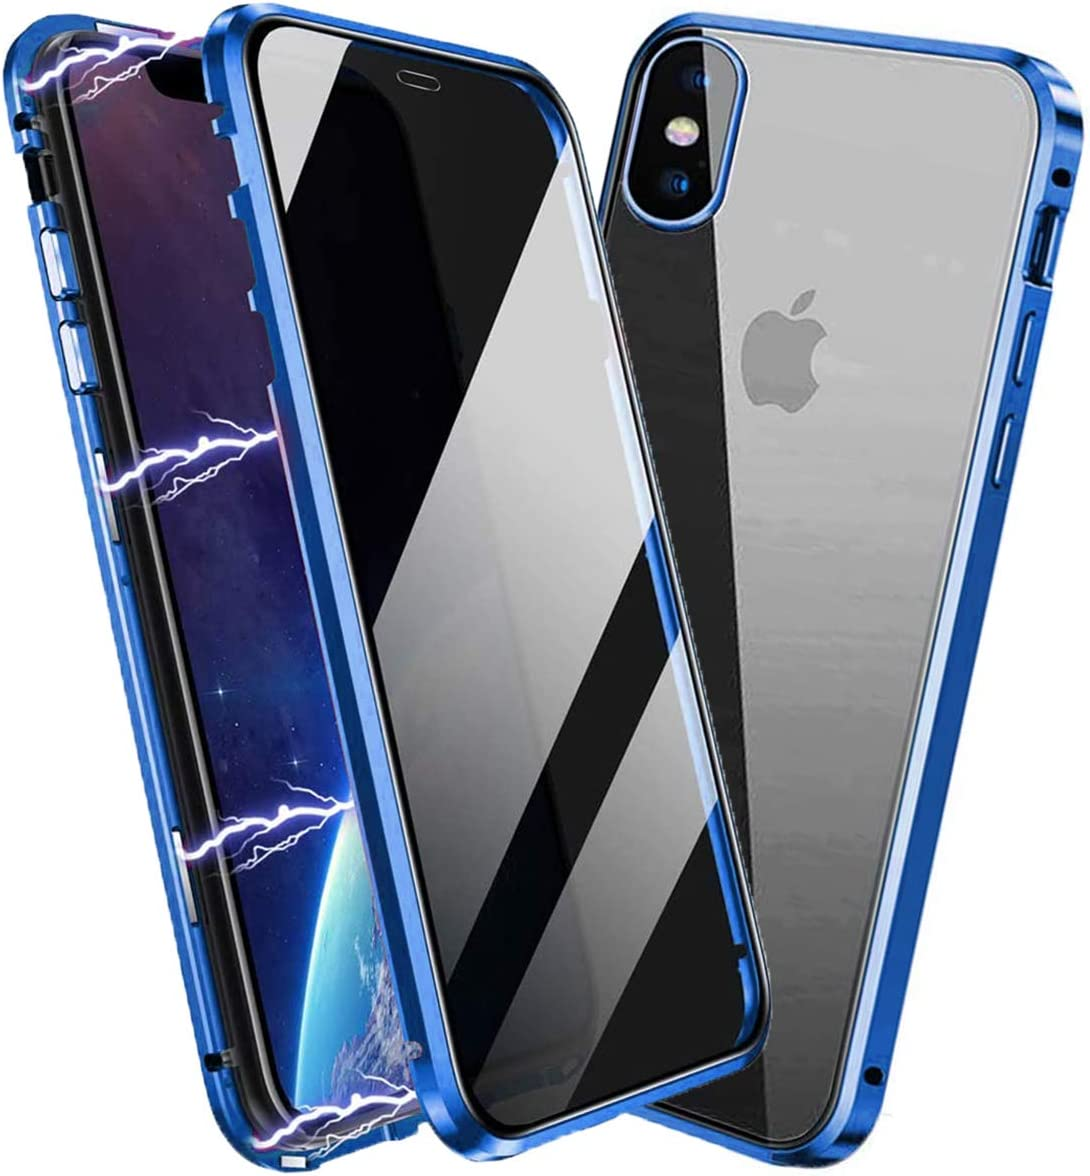 Privacy Magnetic Case for iPhone XR, Anti Peep Magnetic Adsorption Privacy Screen Protector Double Sided Tempered Glass Metal Bumper Frame Anti-Peeping Phone Case Anti-Spy Cover for iPhone XR